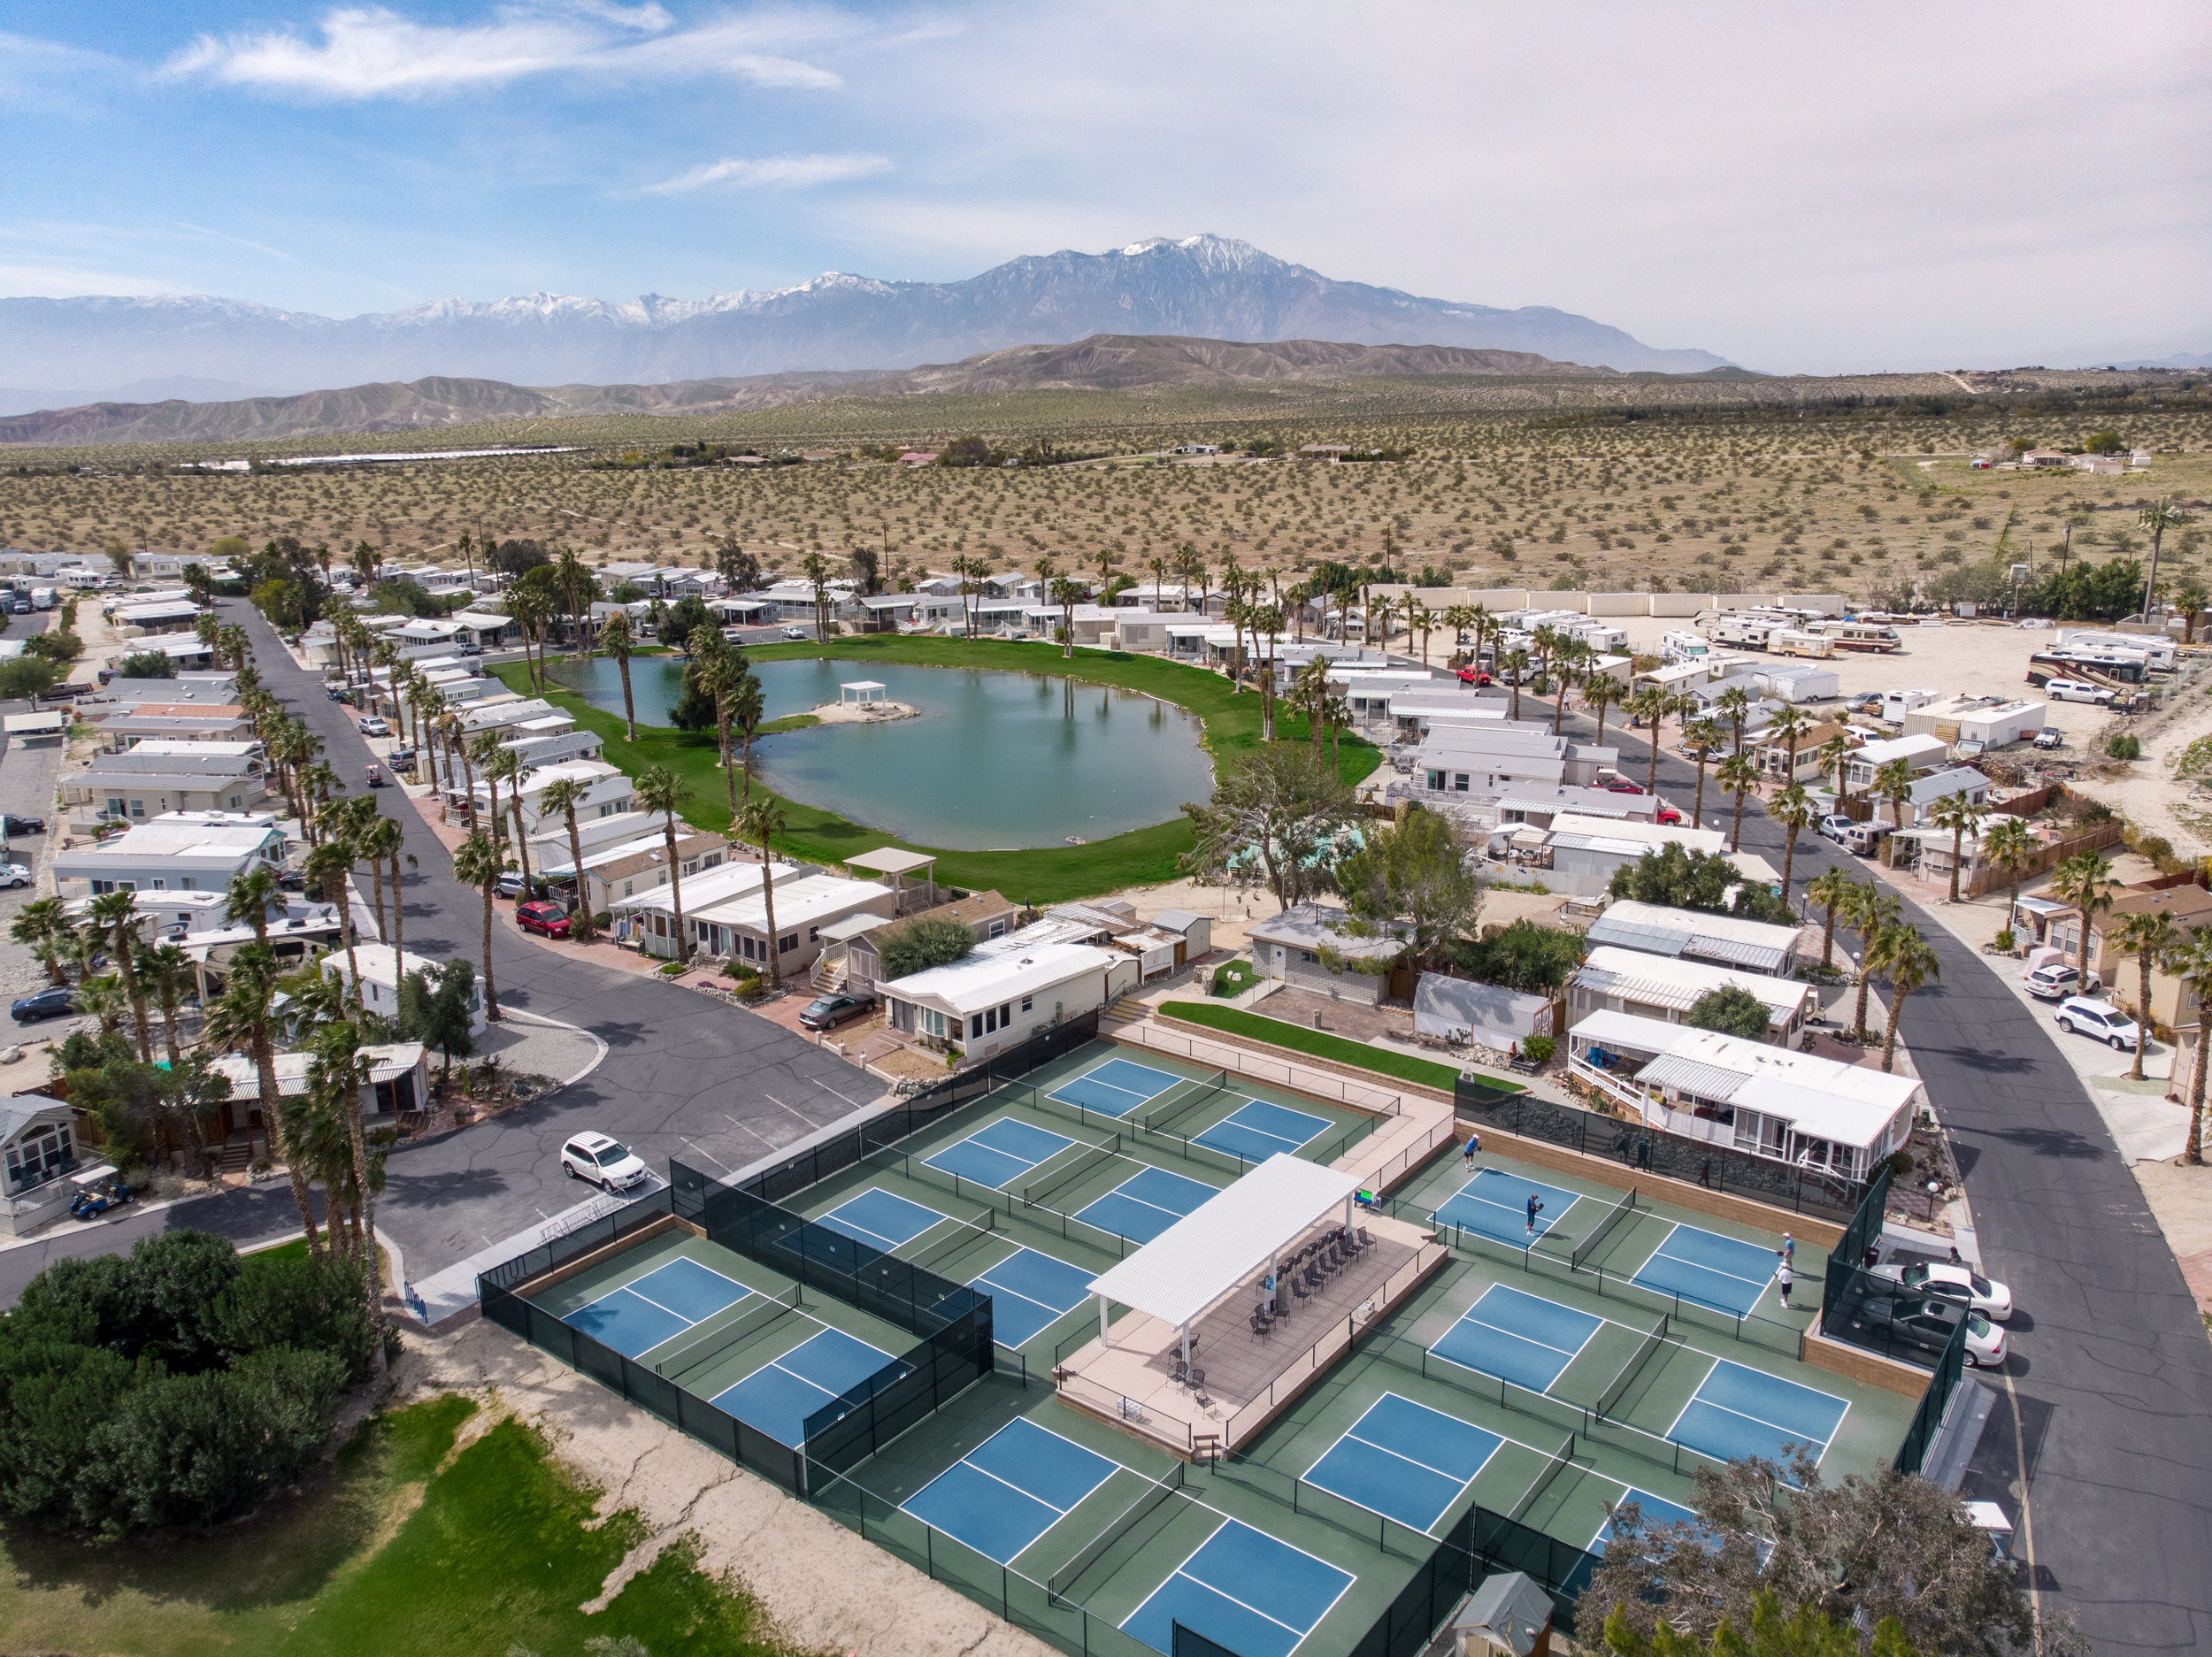 New Pickleball Courts -